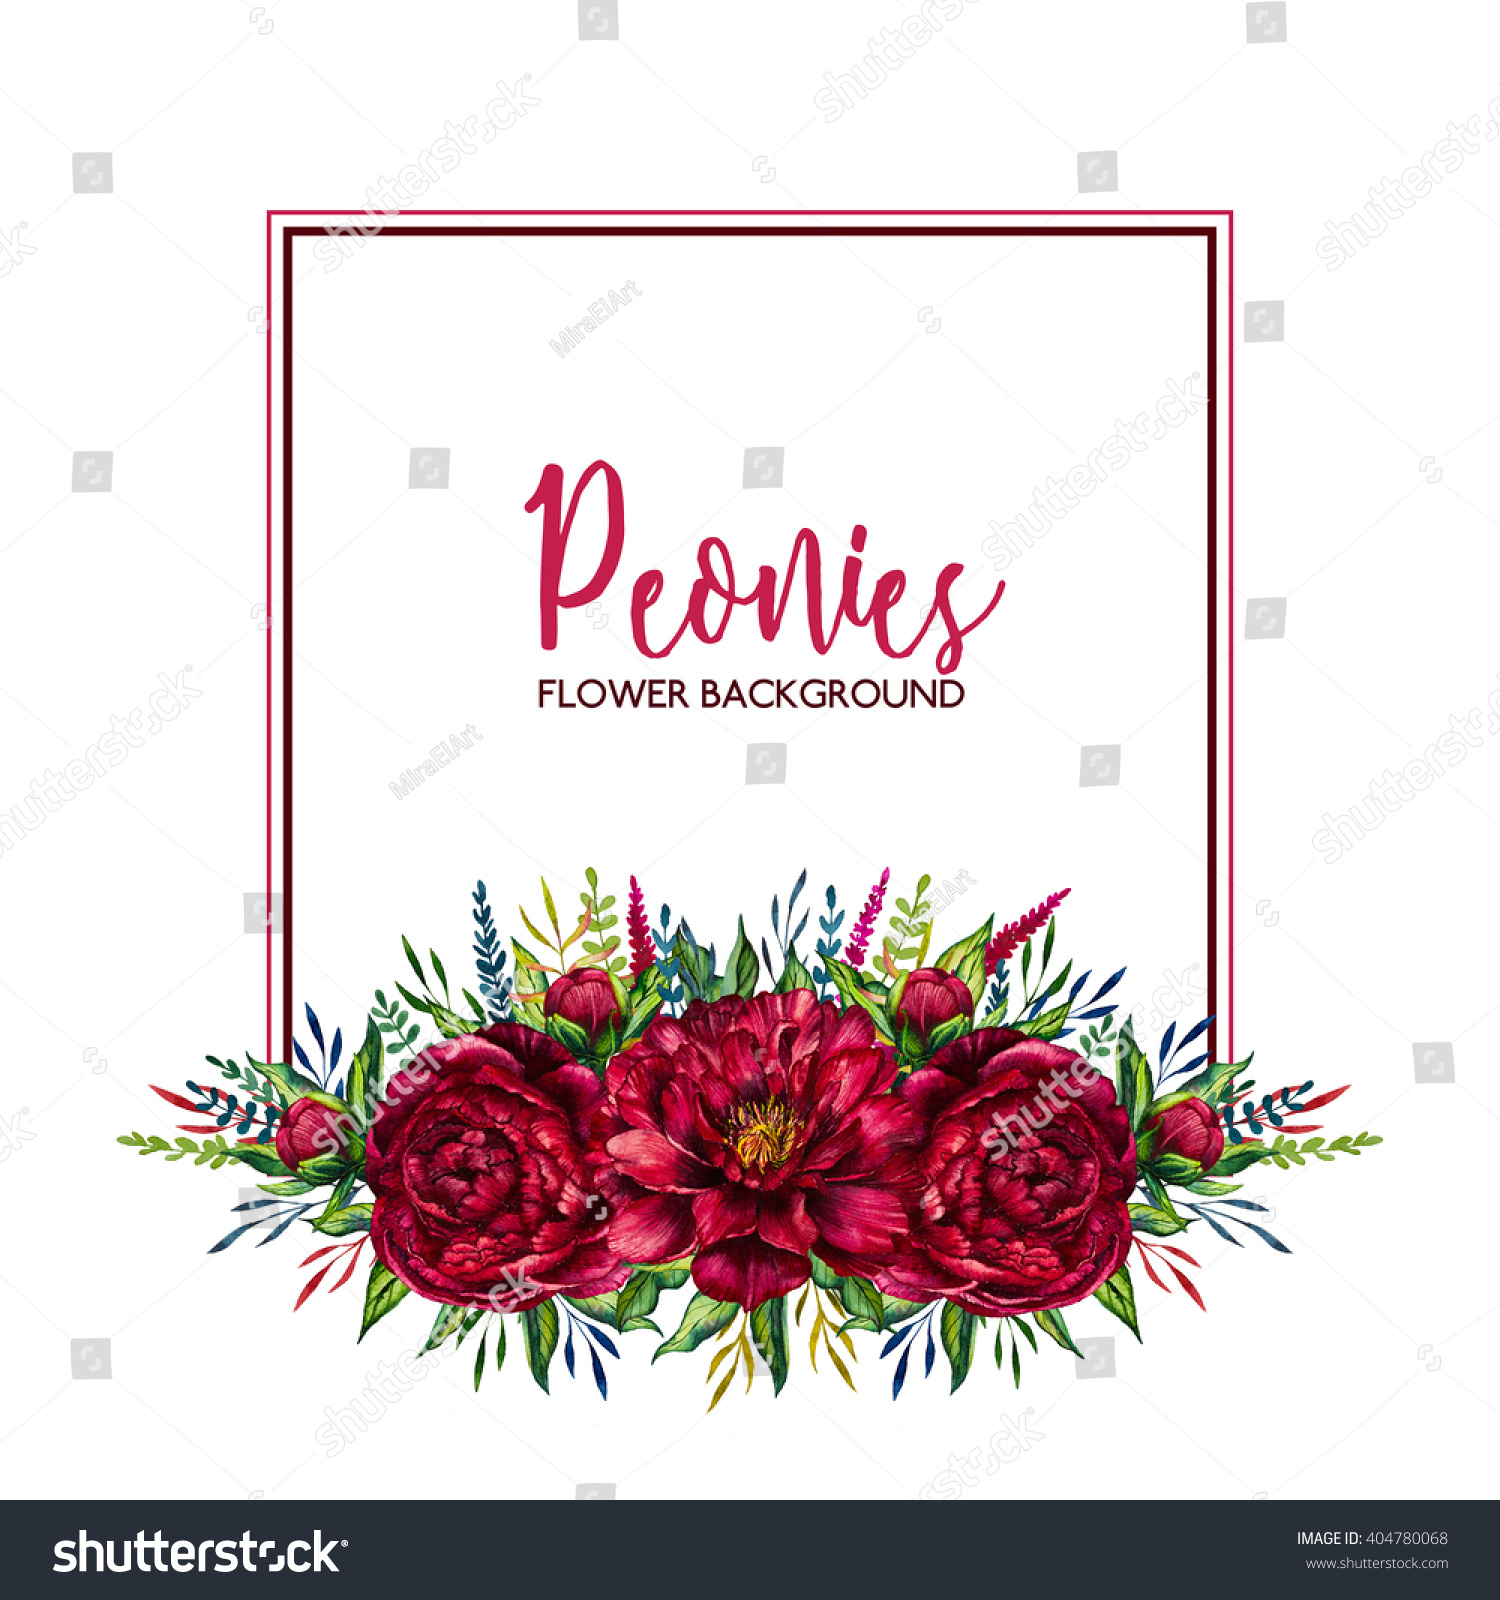 Watercolor Floral Border Flower Red Peony Stock Illustration ...